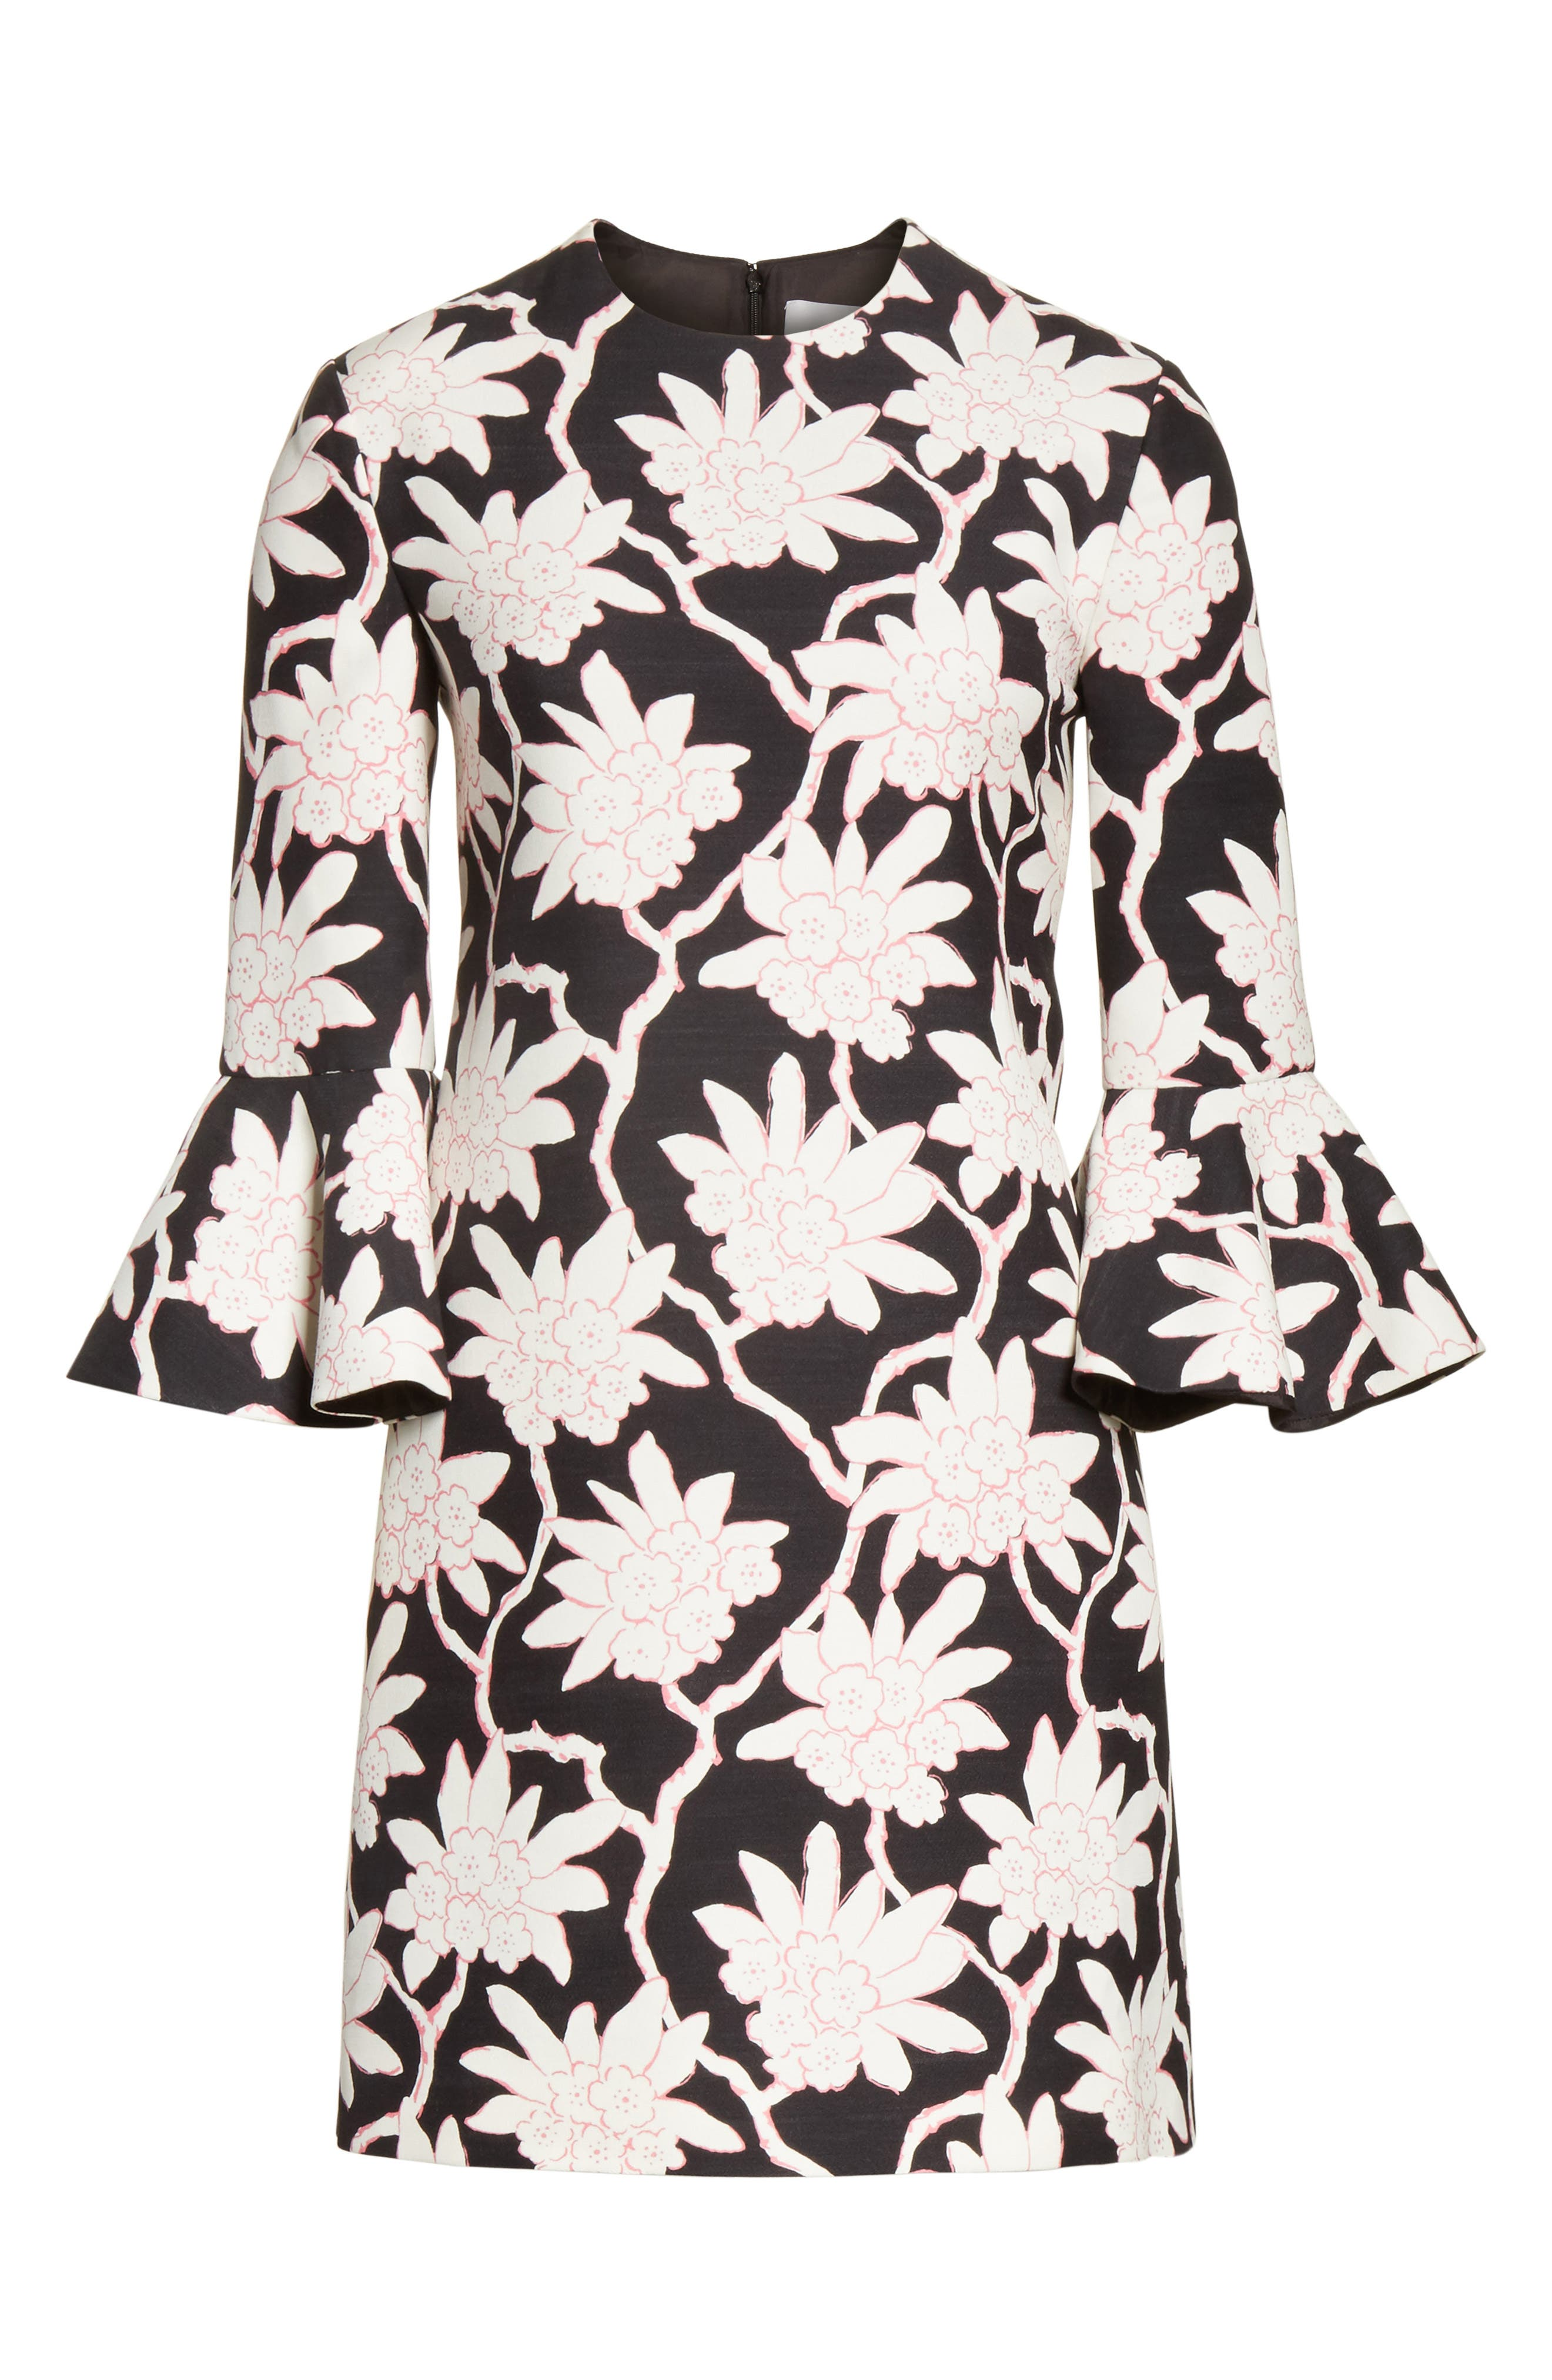 Rhododendron Print Wool & Silk Dress,                             Alternate thumbnail 6, color,                             Black